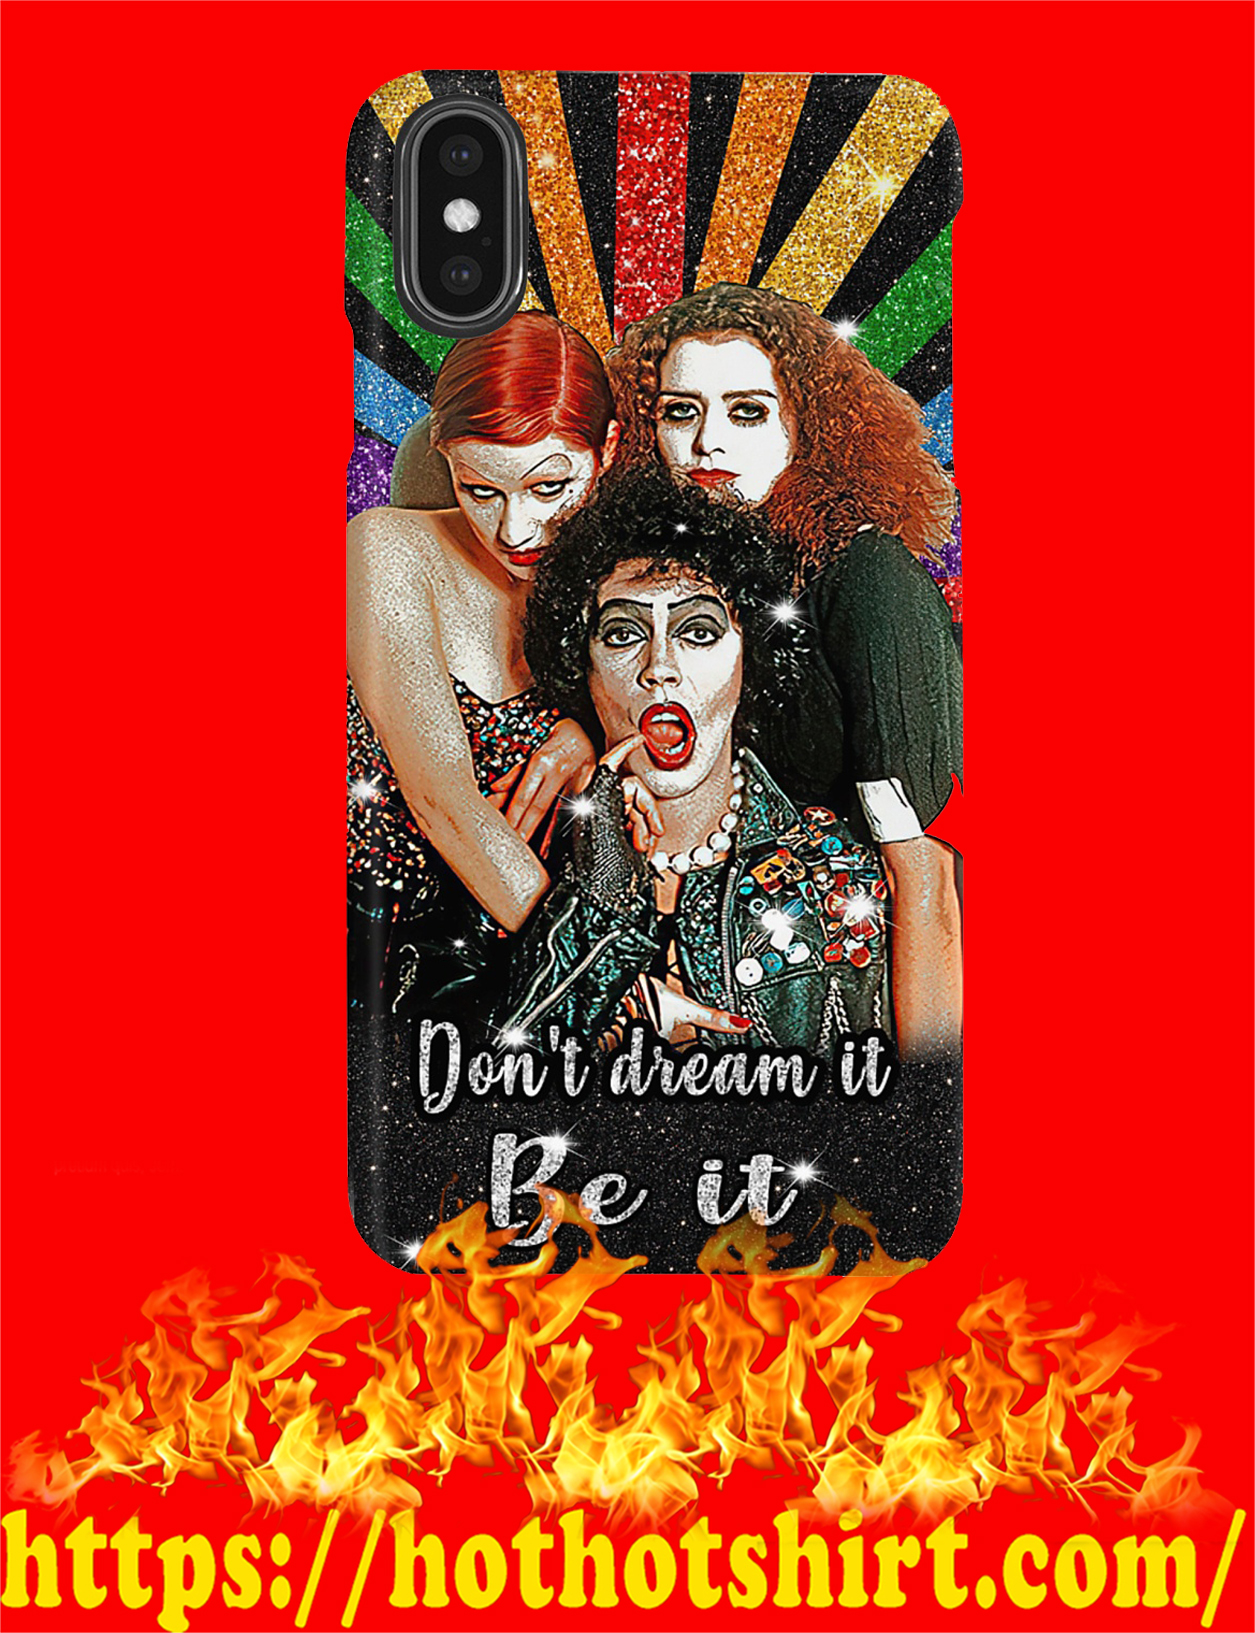 Rocky horror picture show don't dream it be it phone case - pic 2